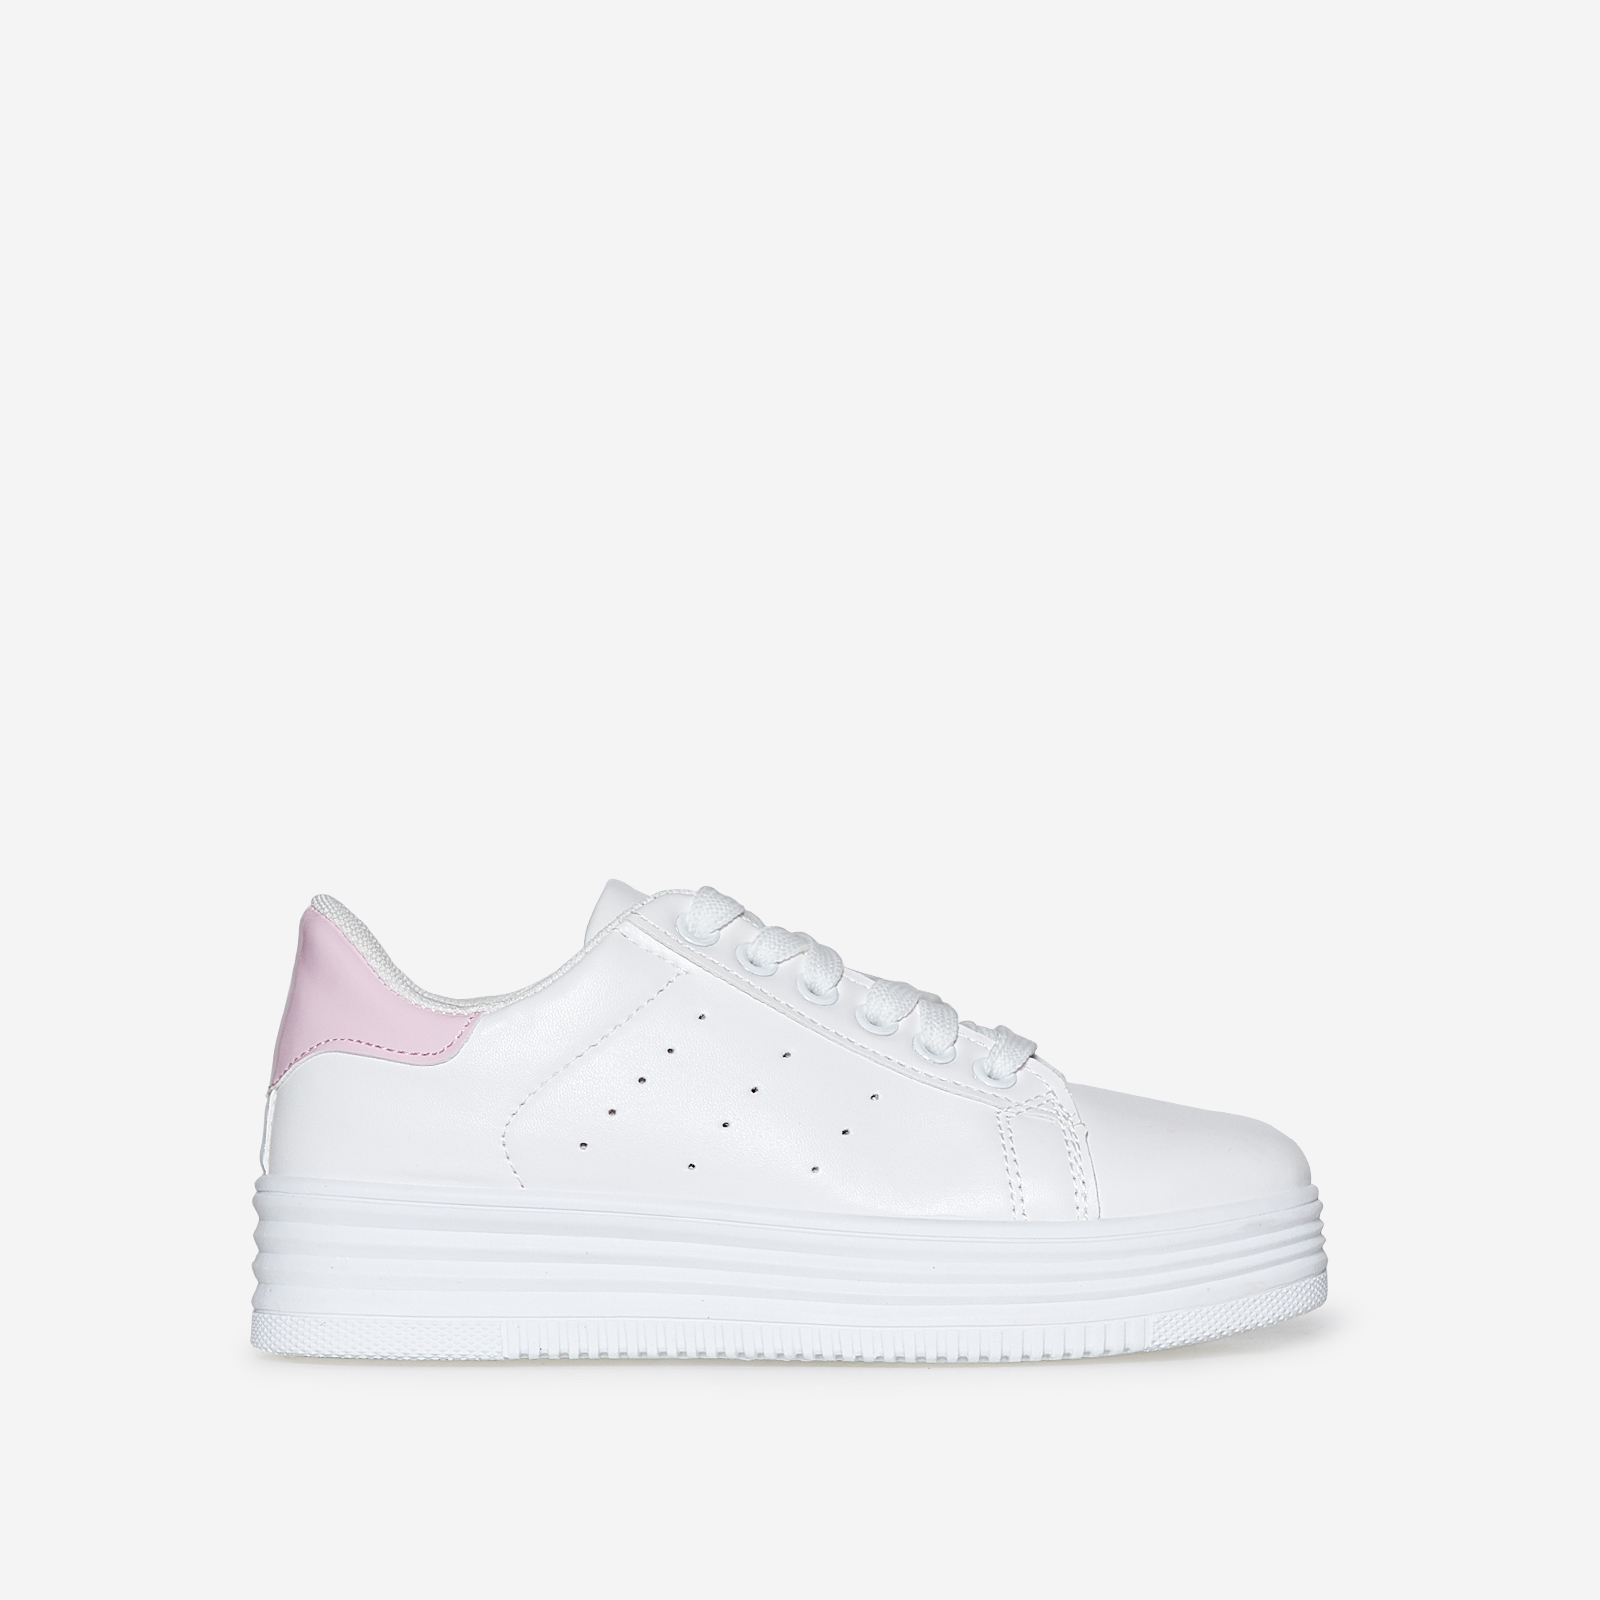 Horton Oversized Trainer With Pink Heel Tab In White Faux Leather